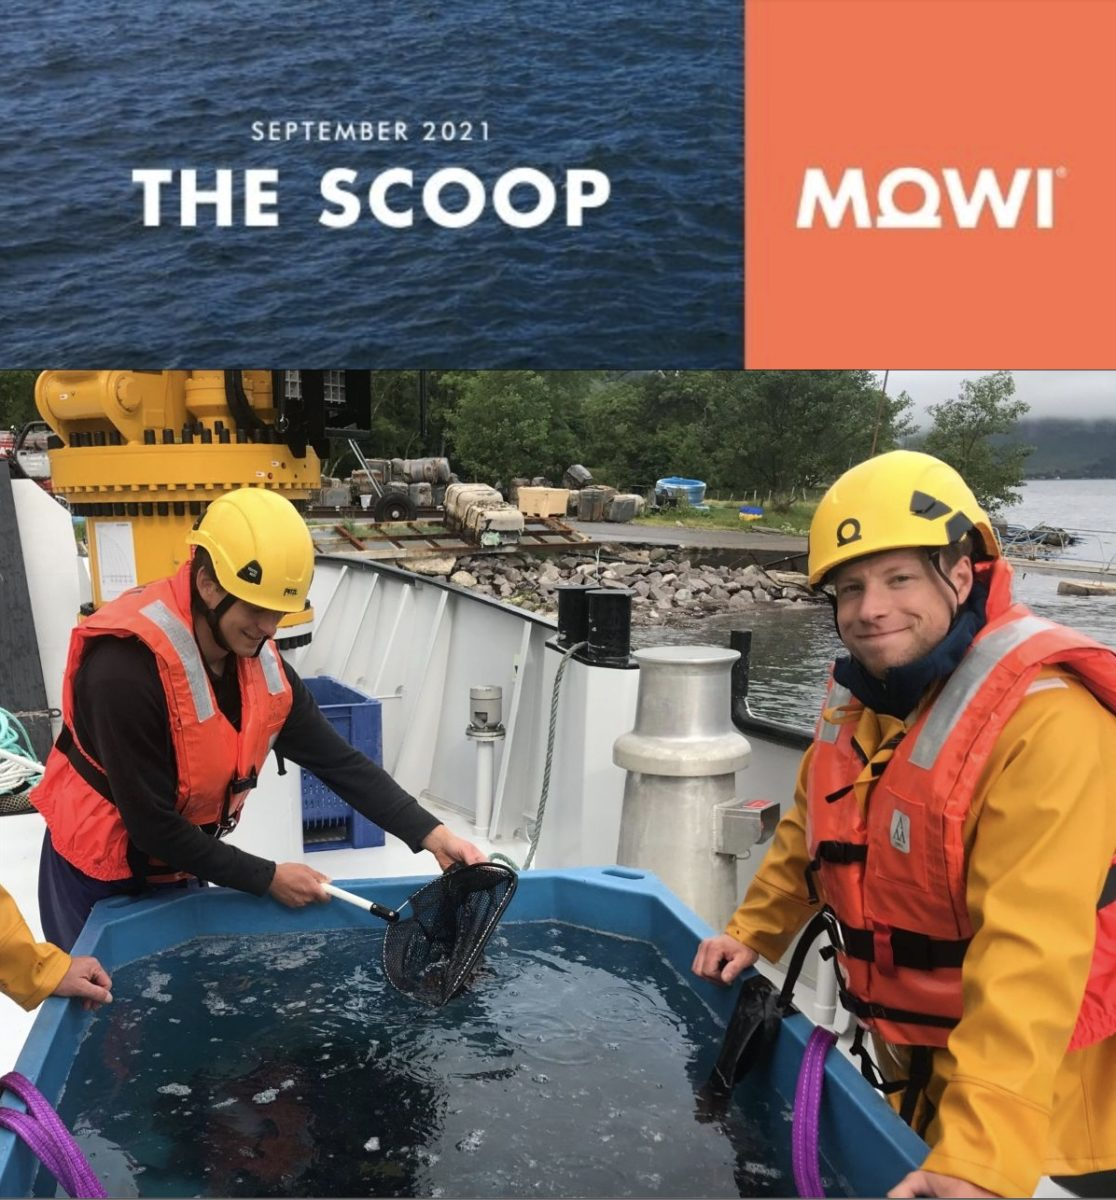 The Scoop - September 2021 issue